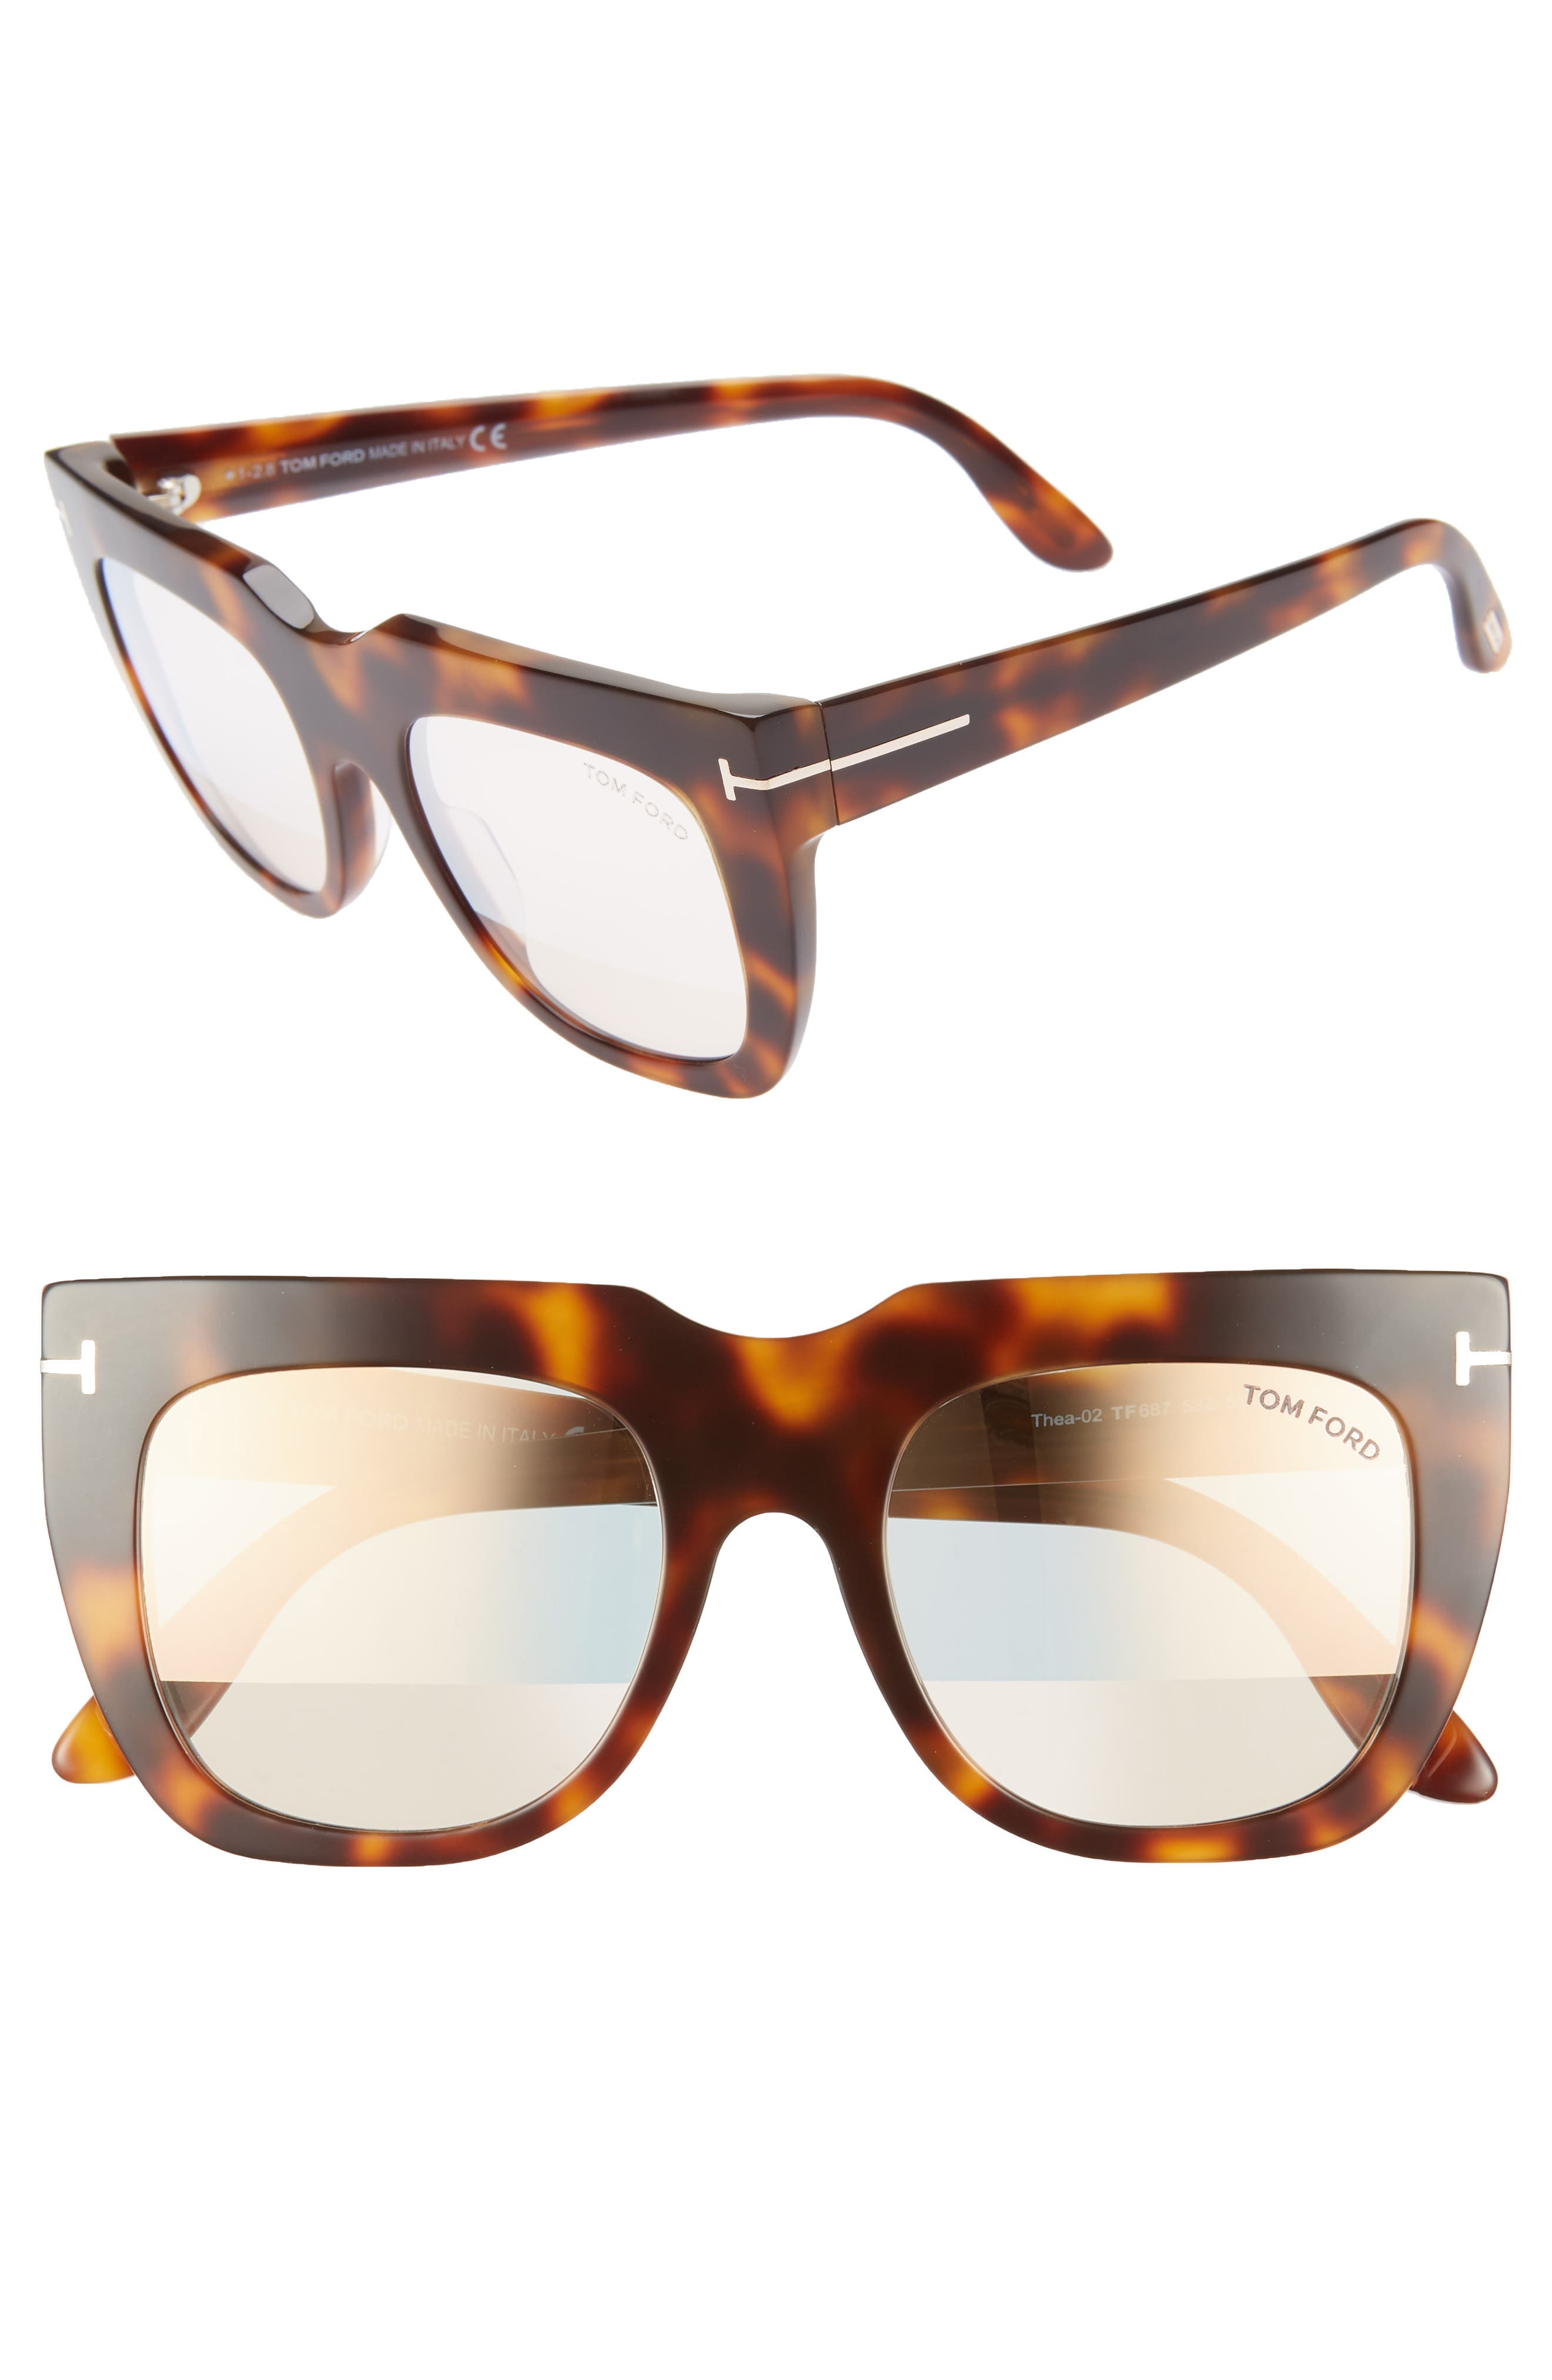 Tom Ford Thea 51Mm Mirrored Cat Eye Glasses - Shiny Havana/ Pink Gold/ Clear